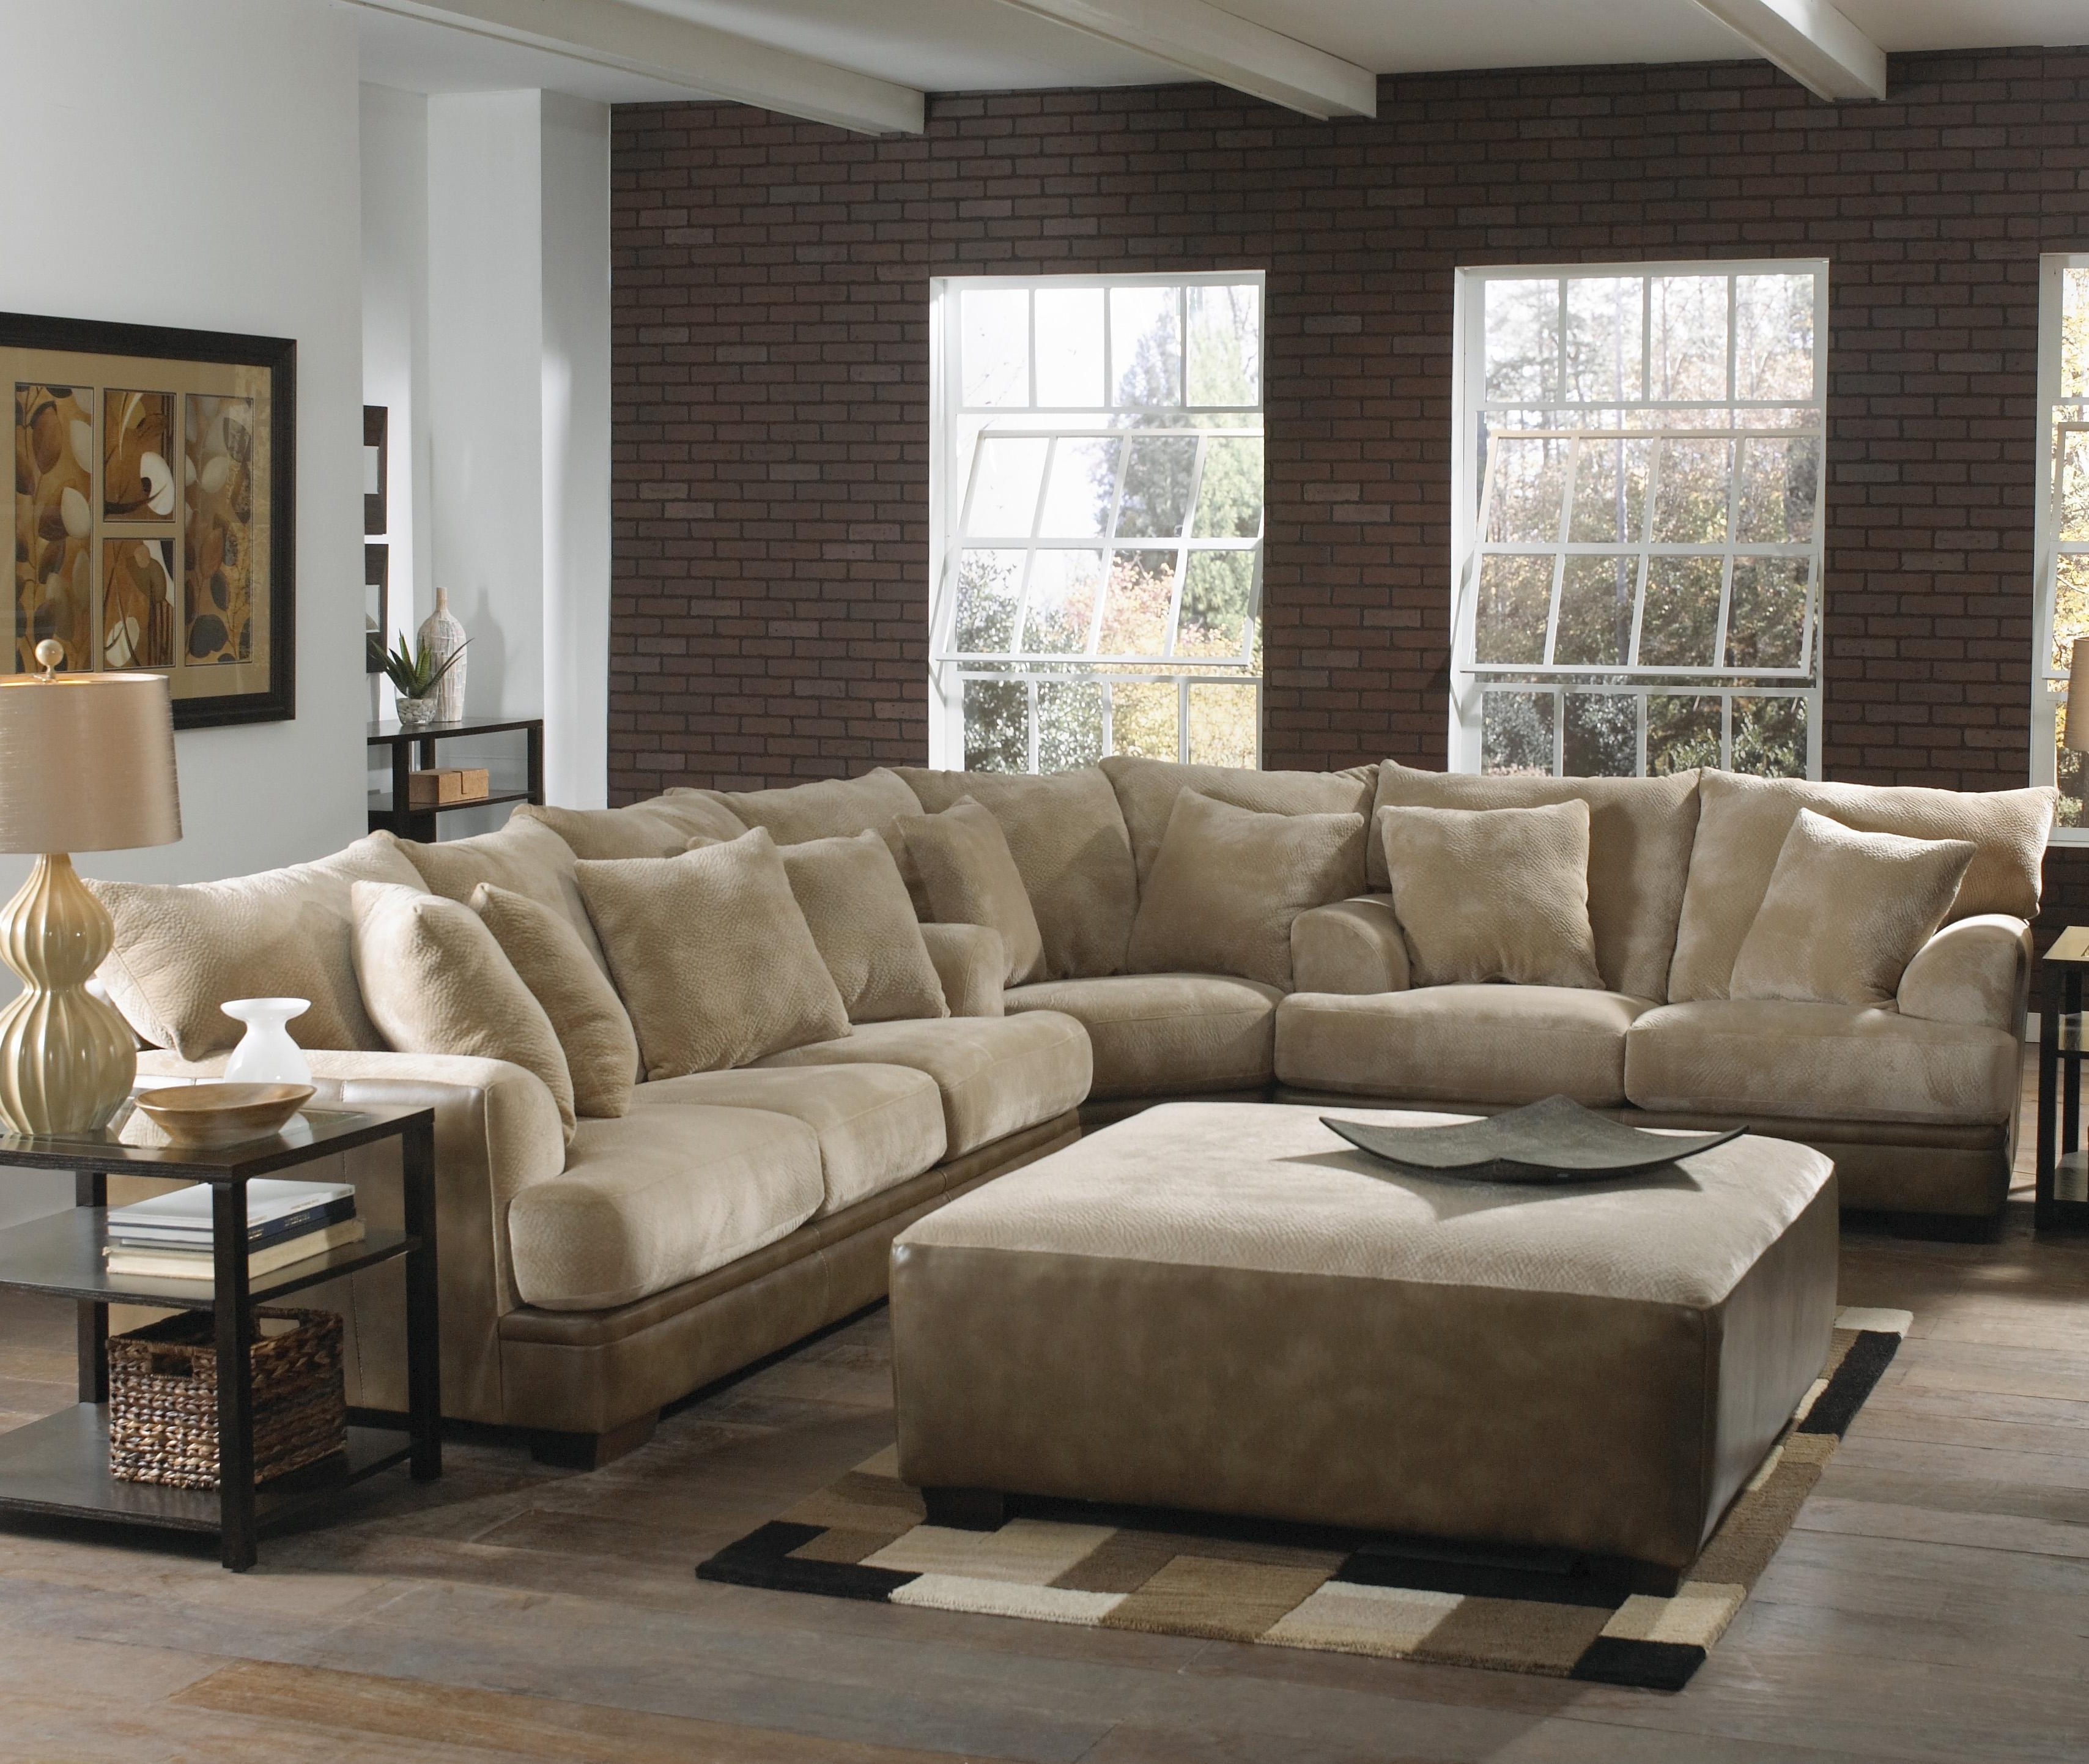 Huge Sofas For Recent Sofa Best Ideas Of Huge Sofas Oversized Sectional Sleeper Cheap (View 12 of 15)